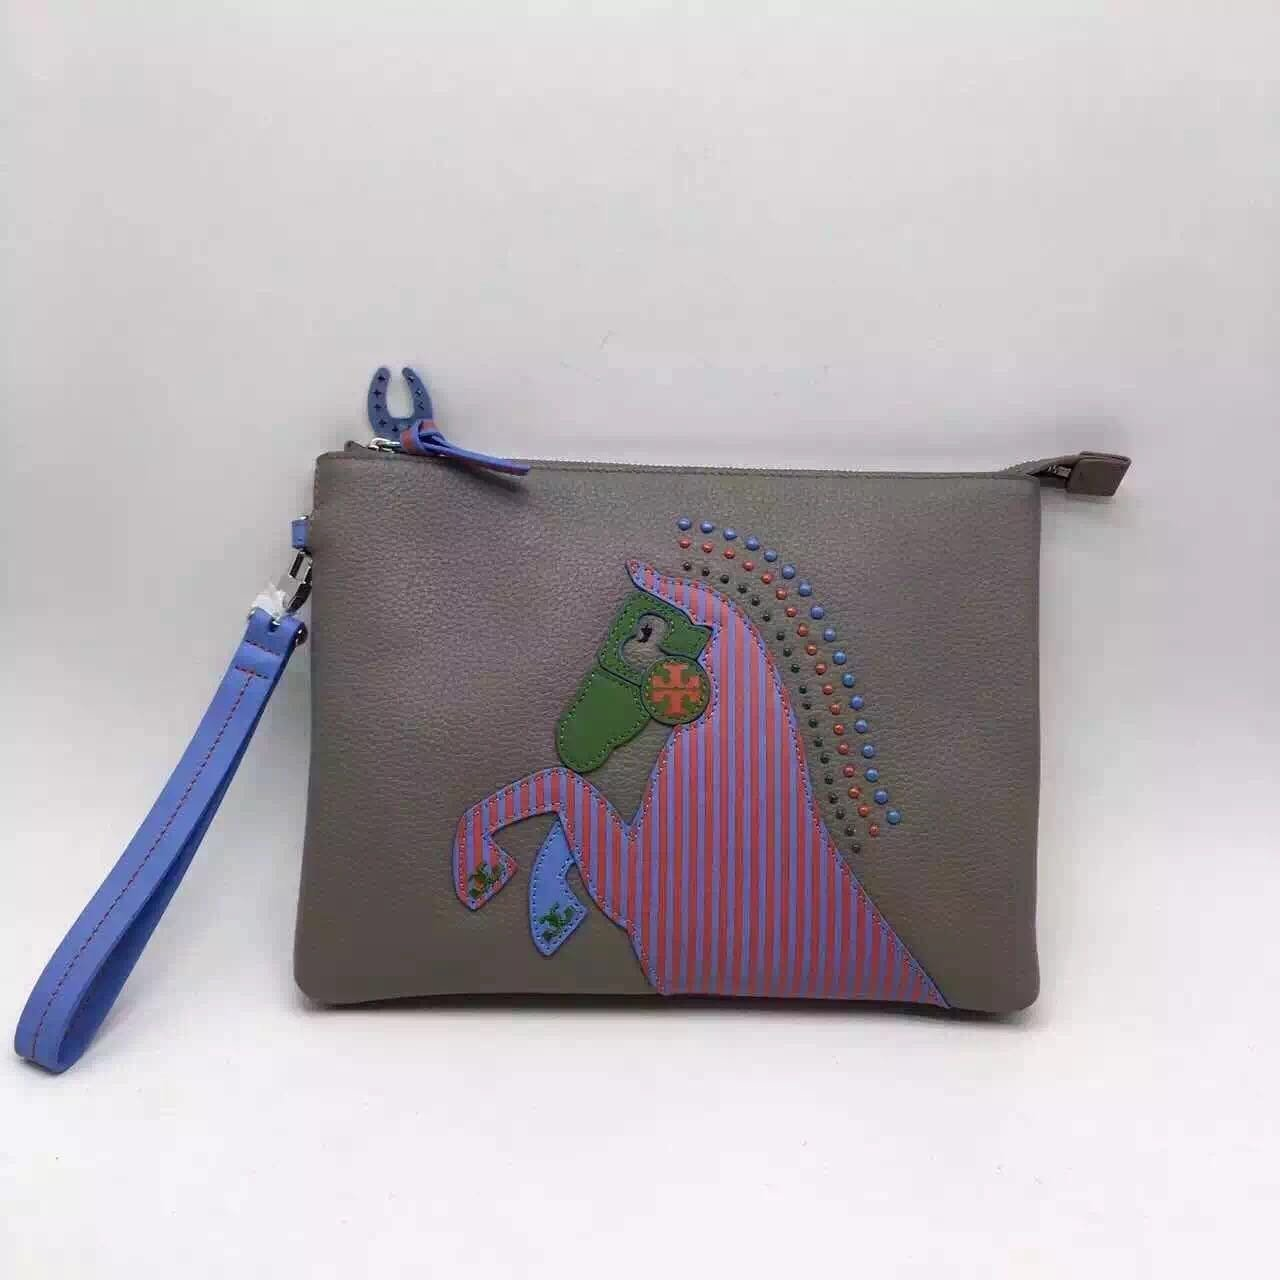 3c5c7a11daf6 ╭☆米蘭店☆TORY BURCH HORSE LARGE POUCH 真皮小馬圖案手拿包